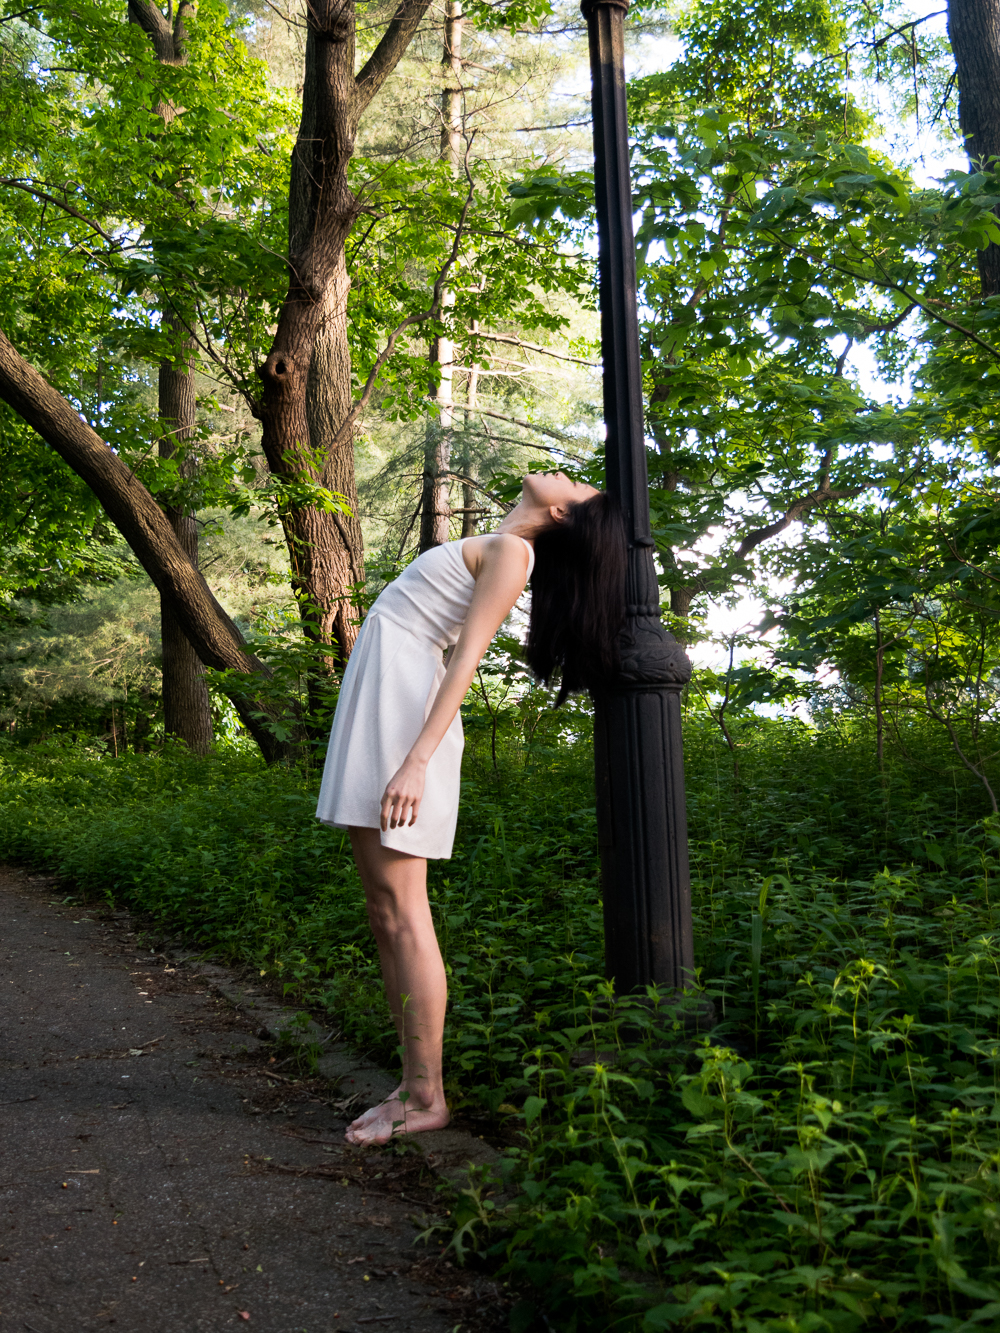 Gi Shieh wearing thrifted white dress, leaning against lamp post, standing in park